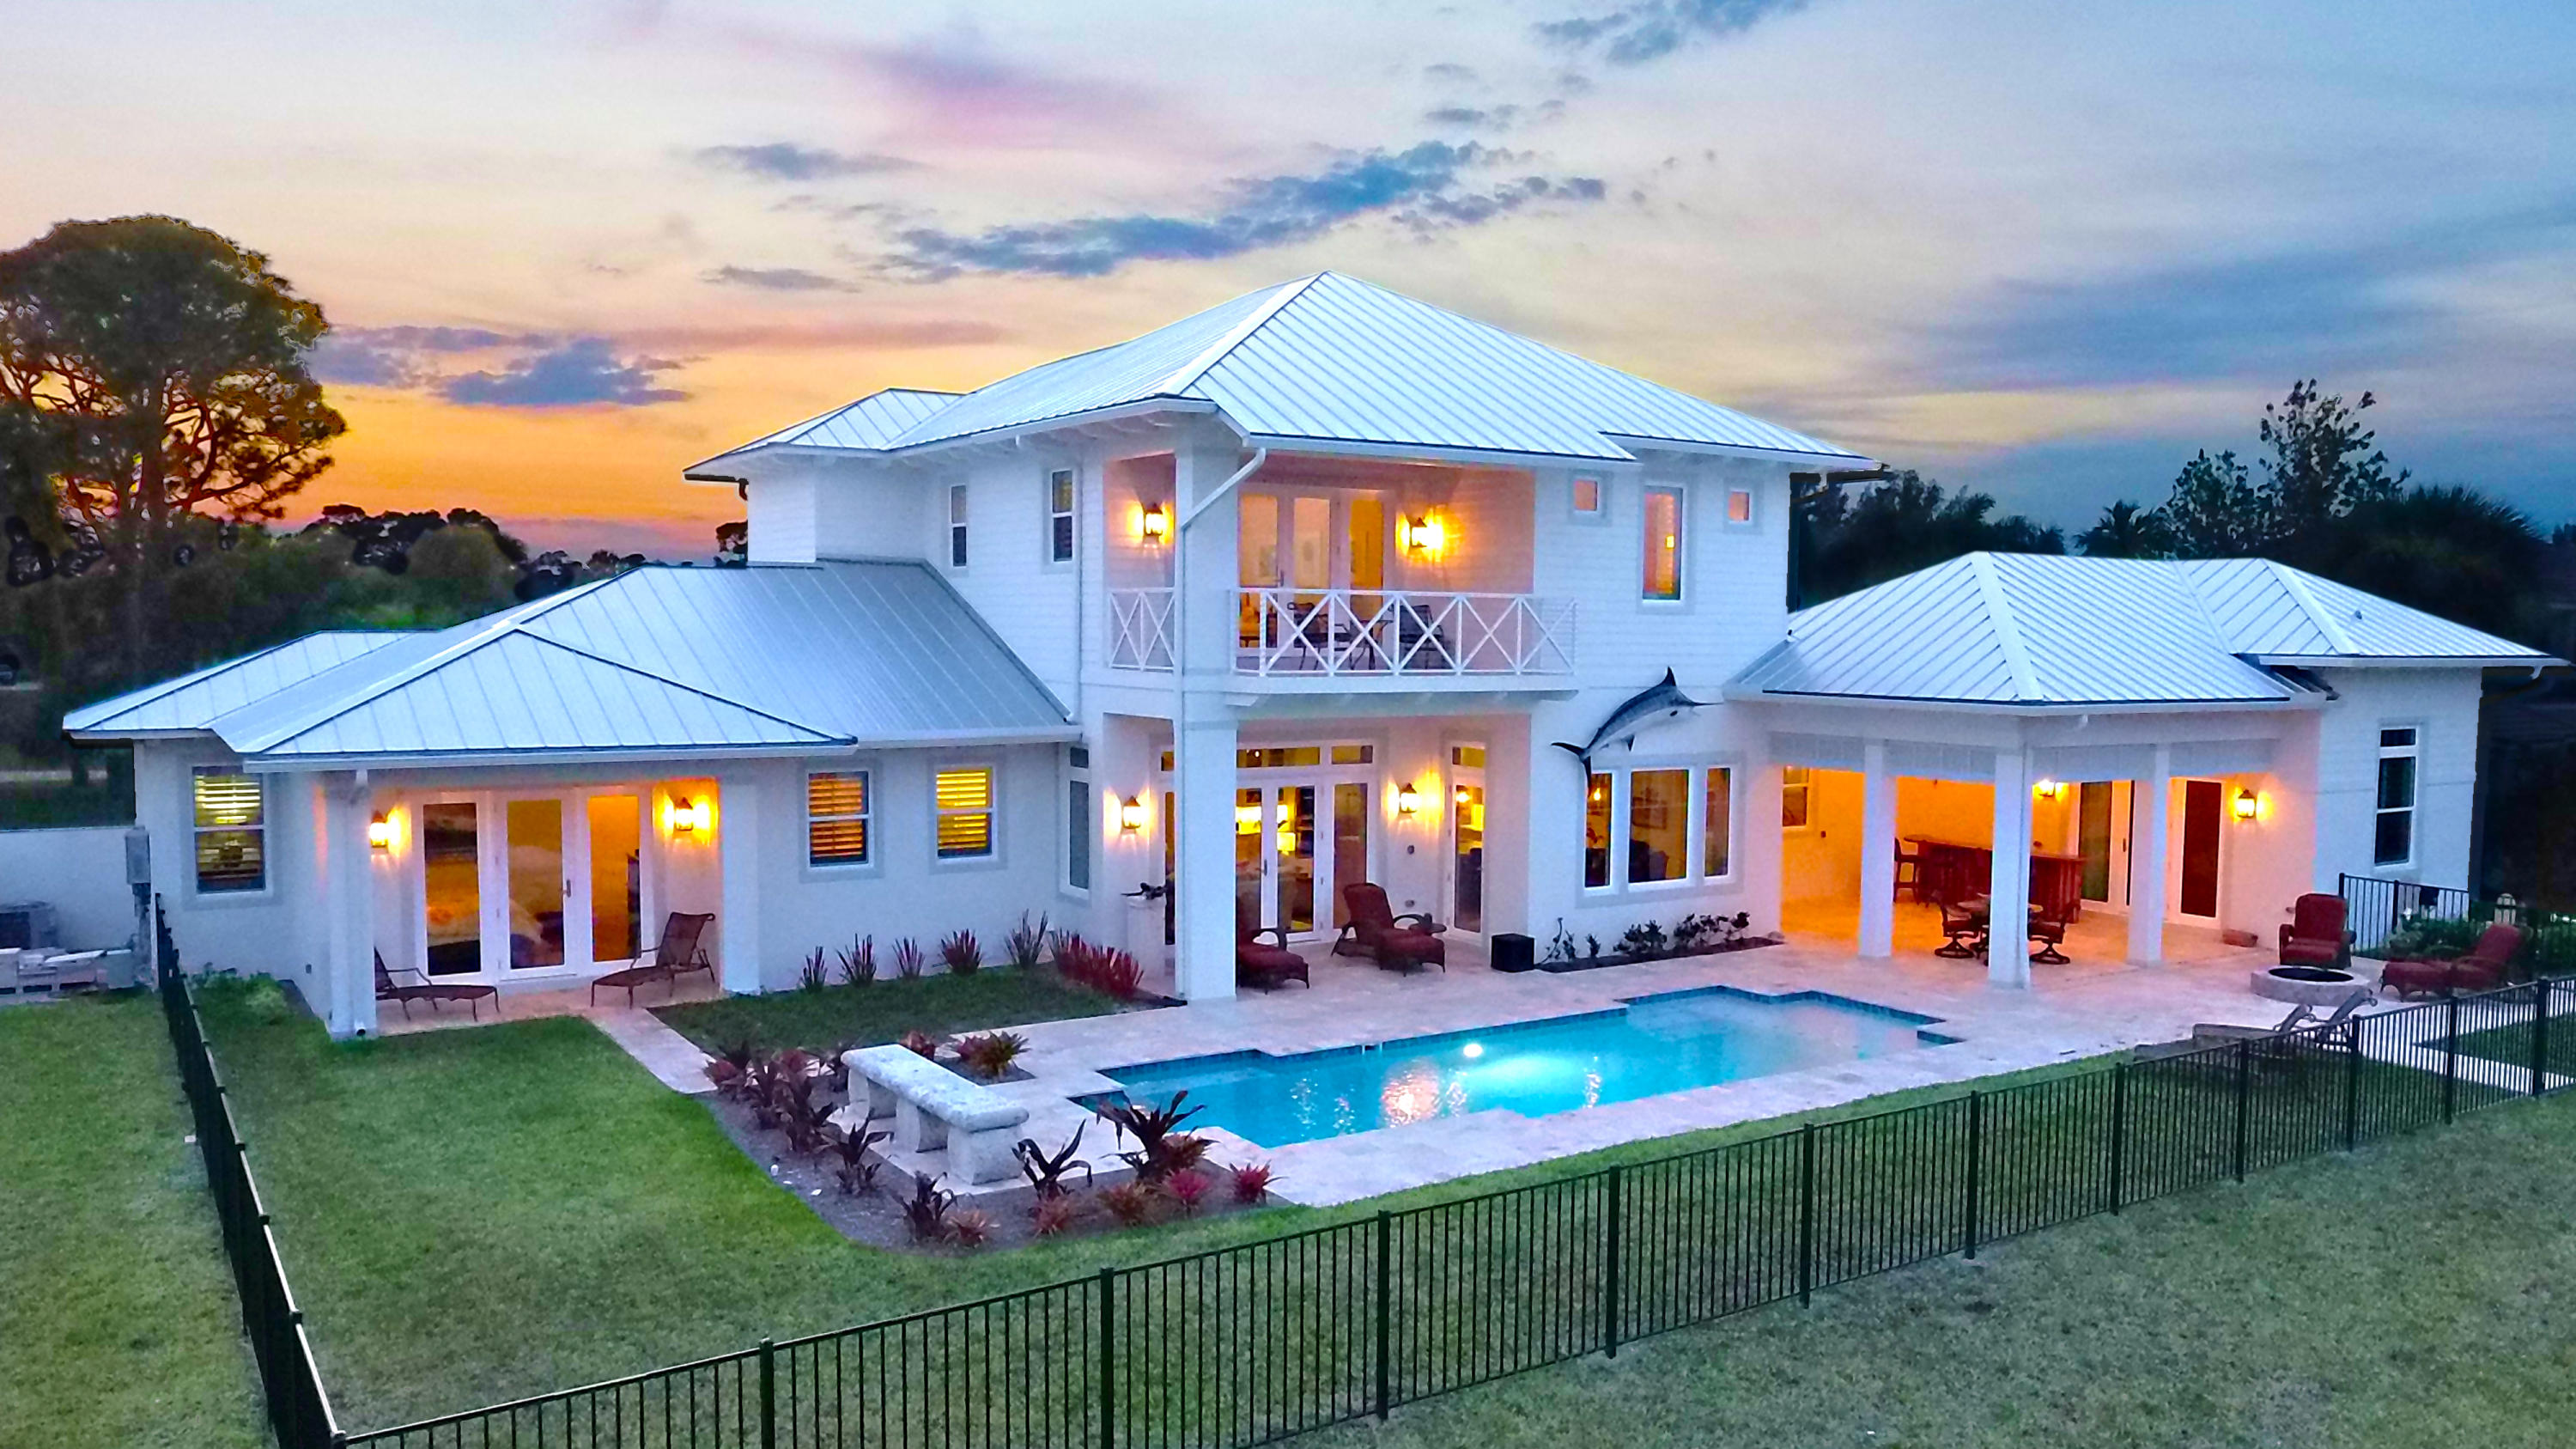 This stunning Waterfront Ocean Access pool home in the gated community of Bay St Lucie brings coastal living to a whole new level!  Just completed in May 2018, this 4 bedroom 4.1 bath home features the finest in finishes, including volume ceilings finished with beautiful beam work & Shiplap walls in all main living areas, the Masted Bedroom and Bath. Gourmet Kitchen features include etched Quartz island countertop, steam and duel ovens, gas stove, and dry bar all overlooking the beautiful St Lucie River.  The private separate Guest Cottage features a nautical themed bedroom and full bath just off the huge covered Lanai.  The deepwater dock features both 24K and 9K pound boat lifts, along with a much larger slip for yacht dockage. This home is a jaw-dropper with an amazing focus on details!